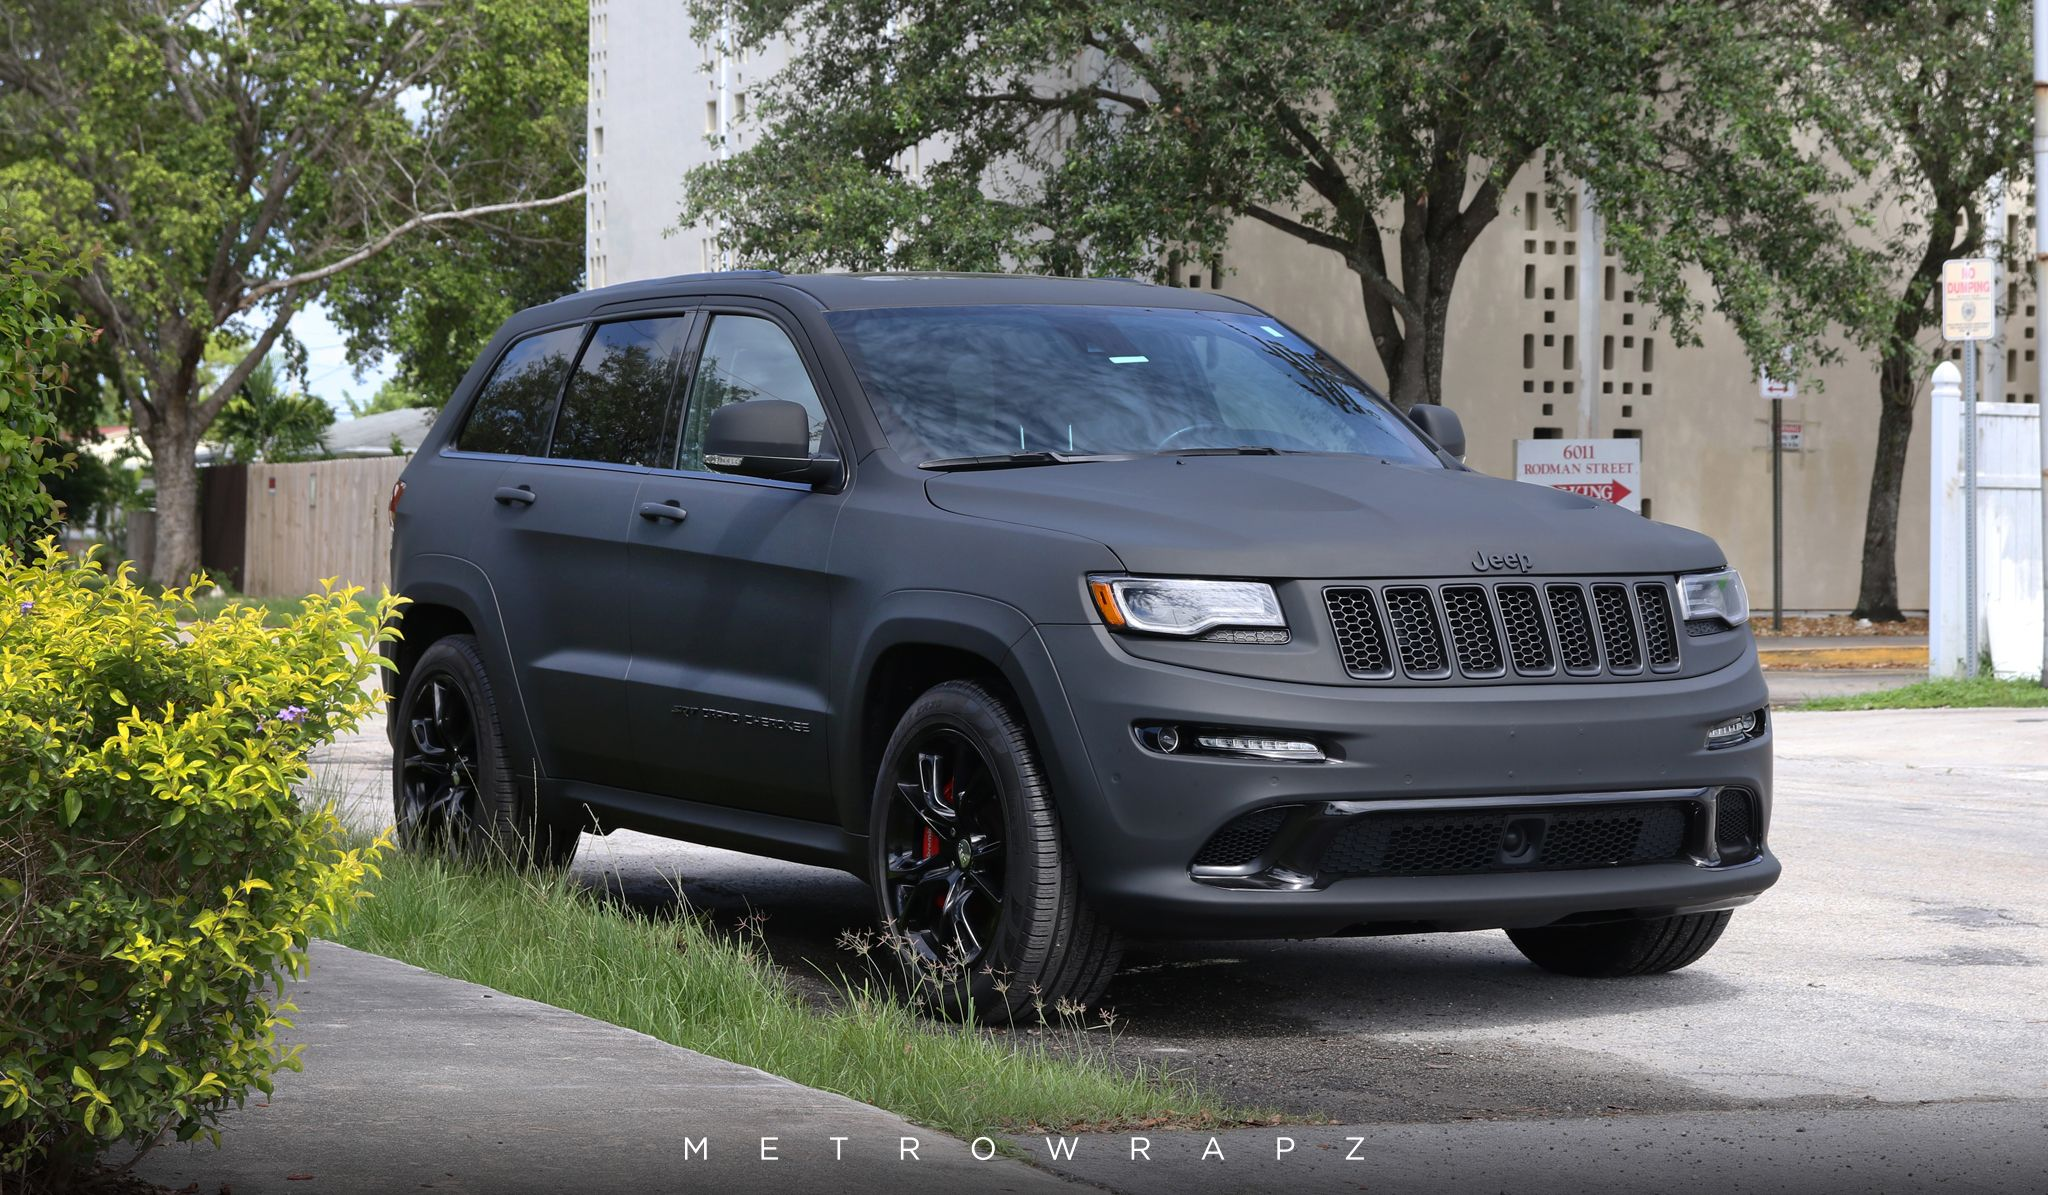 Jeep Grand Cherokee With A Dead Matte Black Color Change Metrowrapz Jeep Jeepgrandcherokee 3mwaps 3m Jeep Grand Cherokee Jeep Cherokee Laredo Jeep